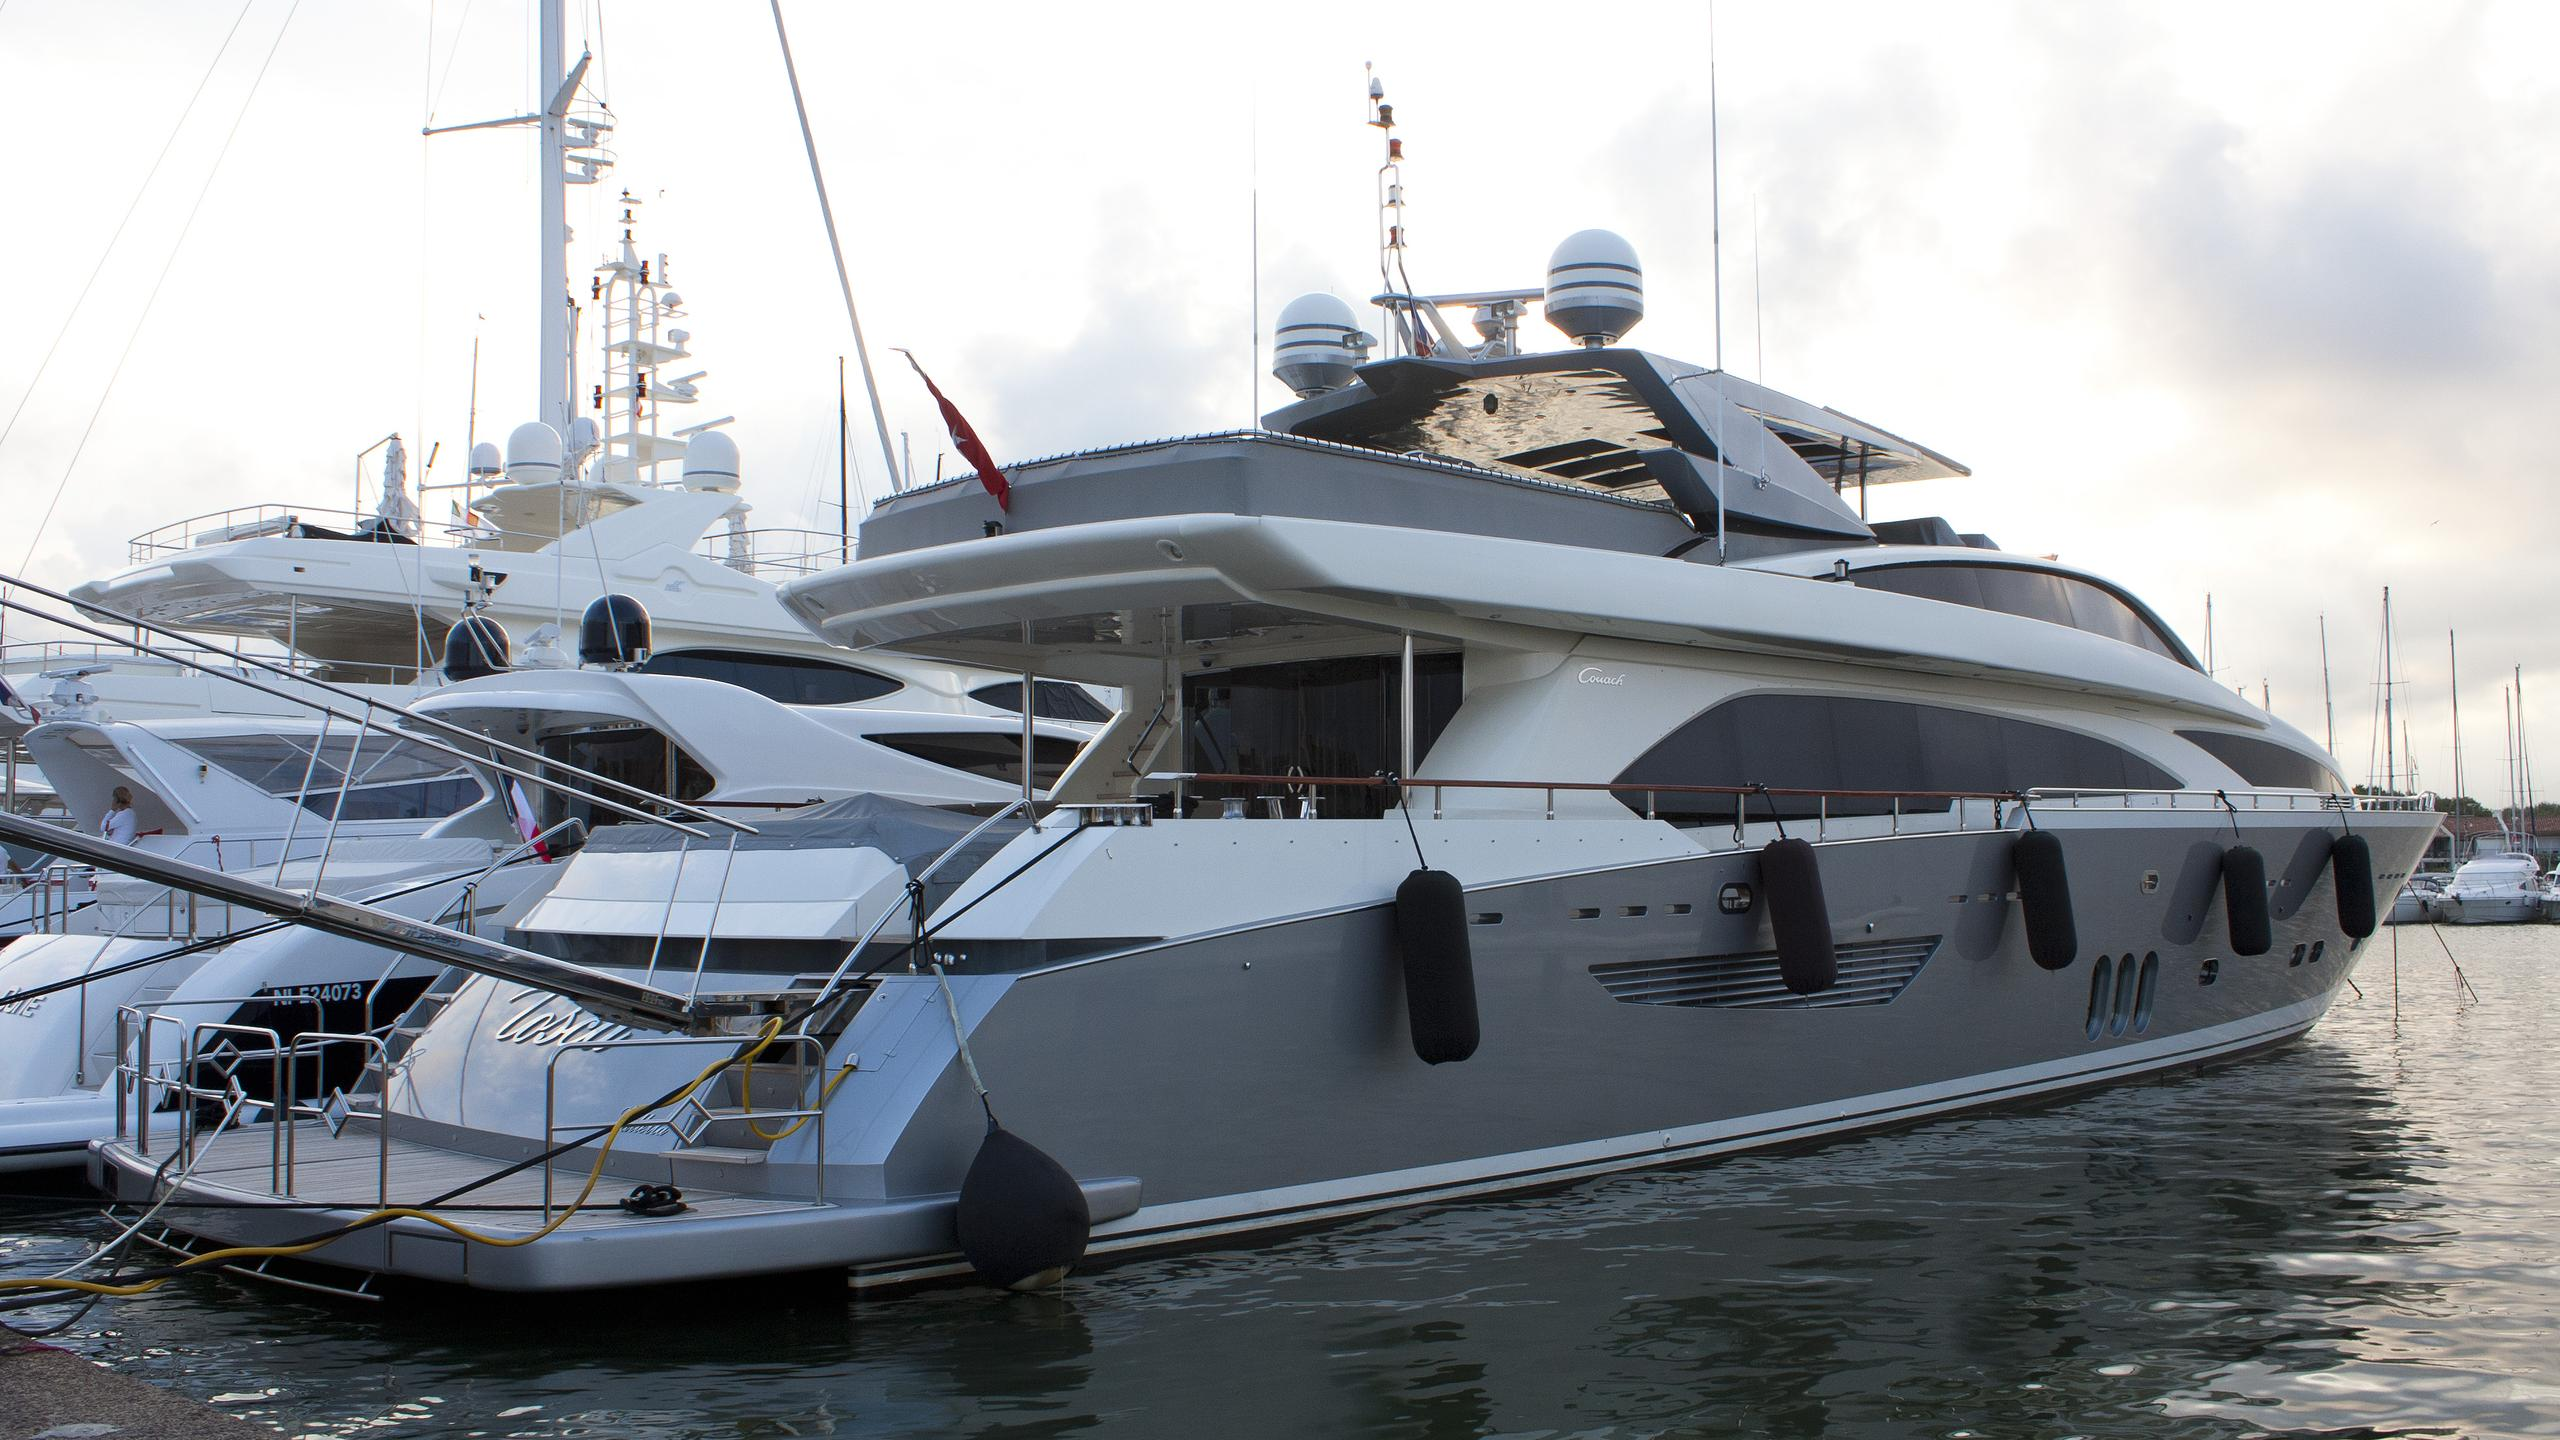 nyota-tosca-motor-yacht-couach-3700-fly-2008-37m-half-profile